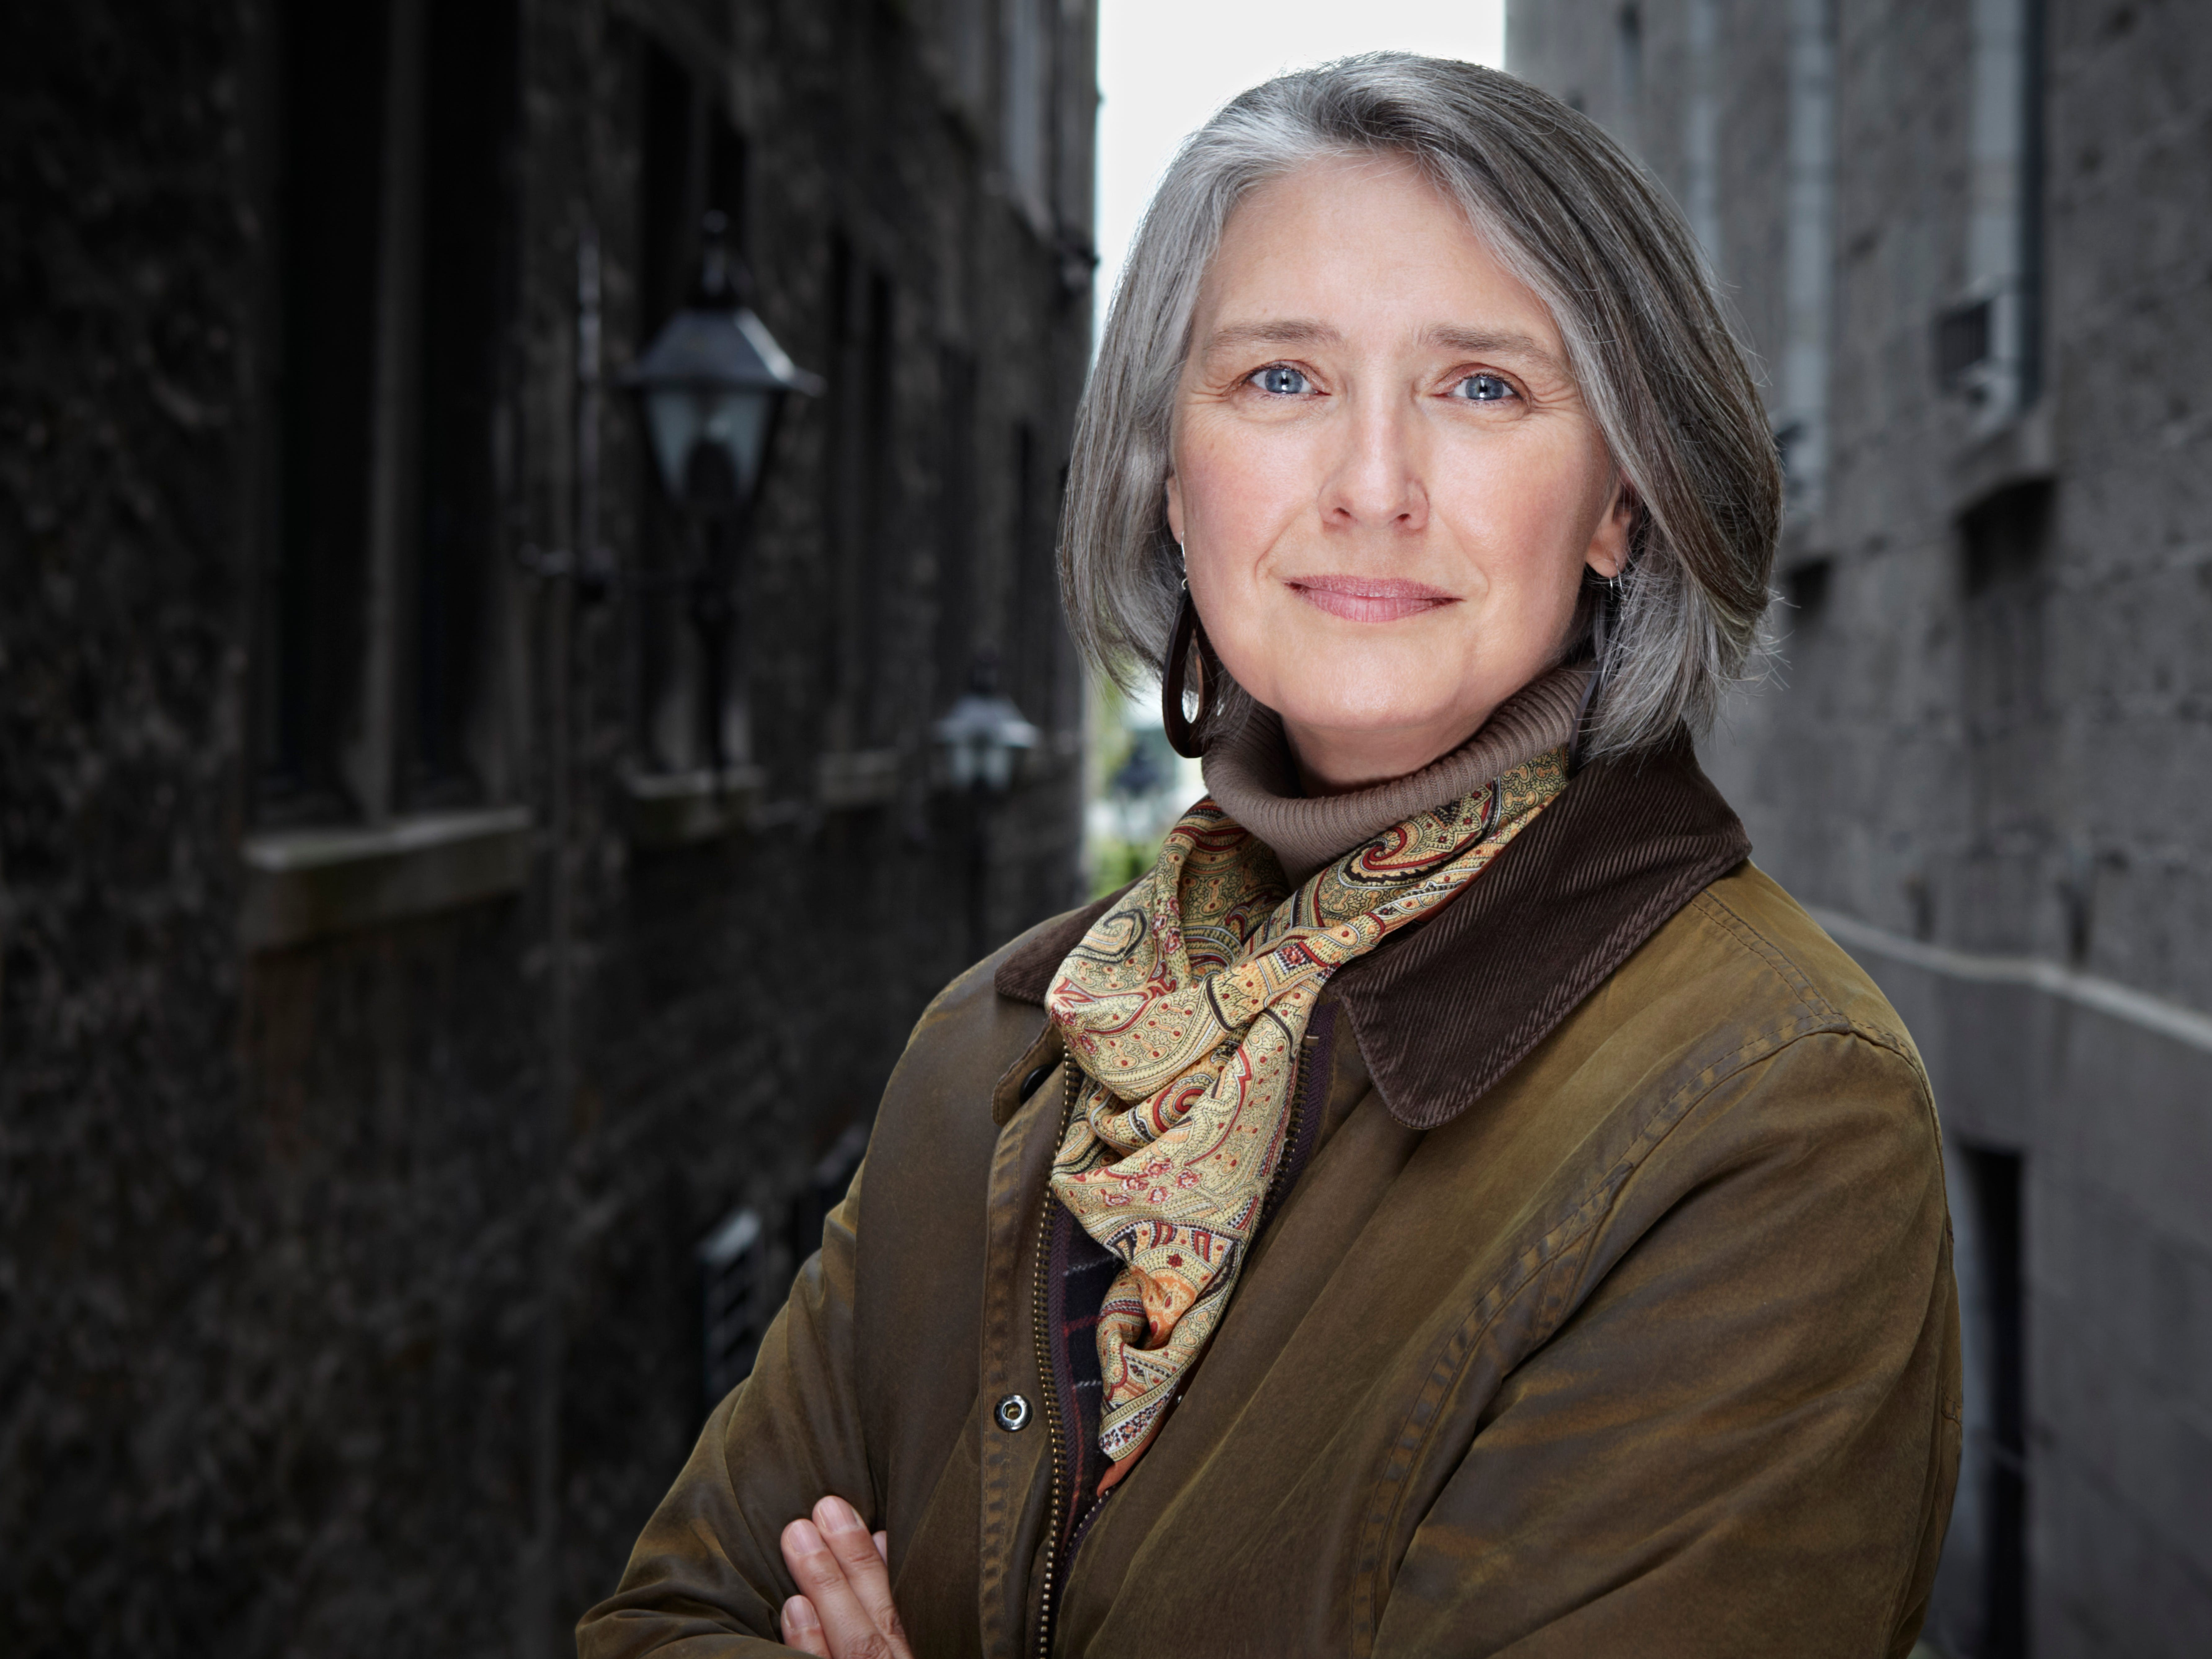 Best-selling author Louise Penny launches new novel from Tallahassee